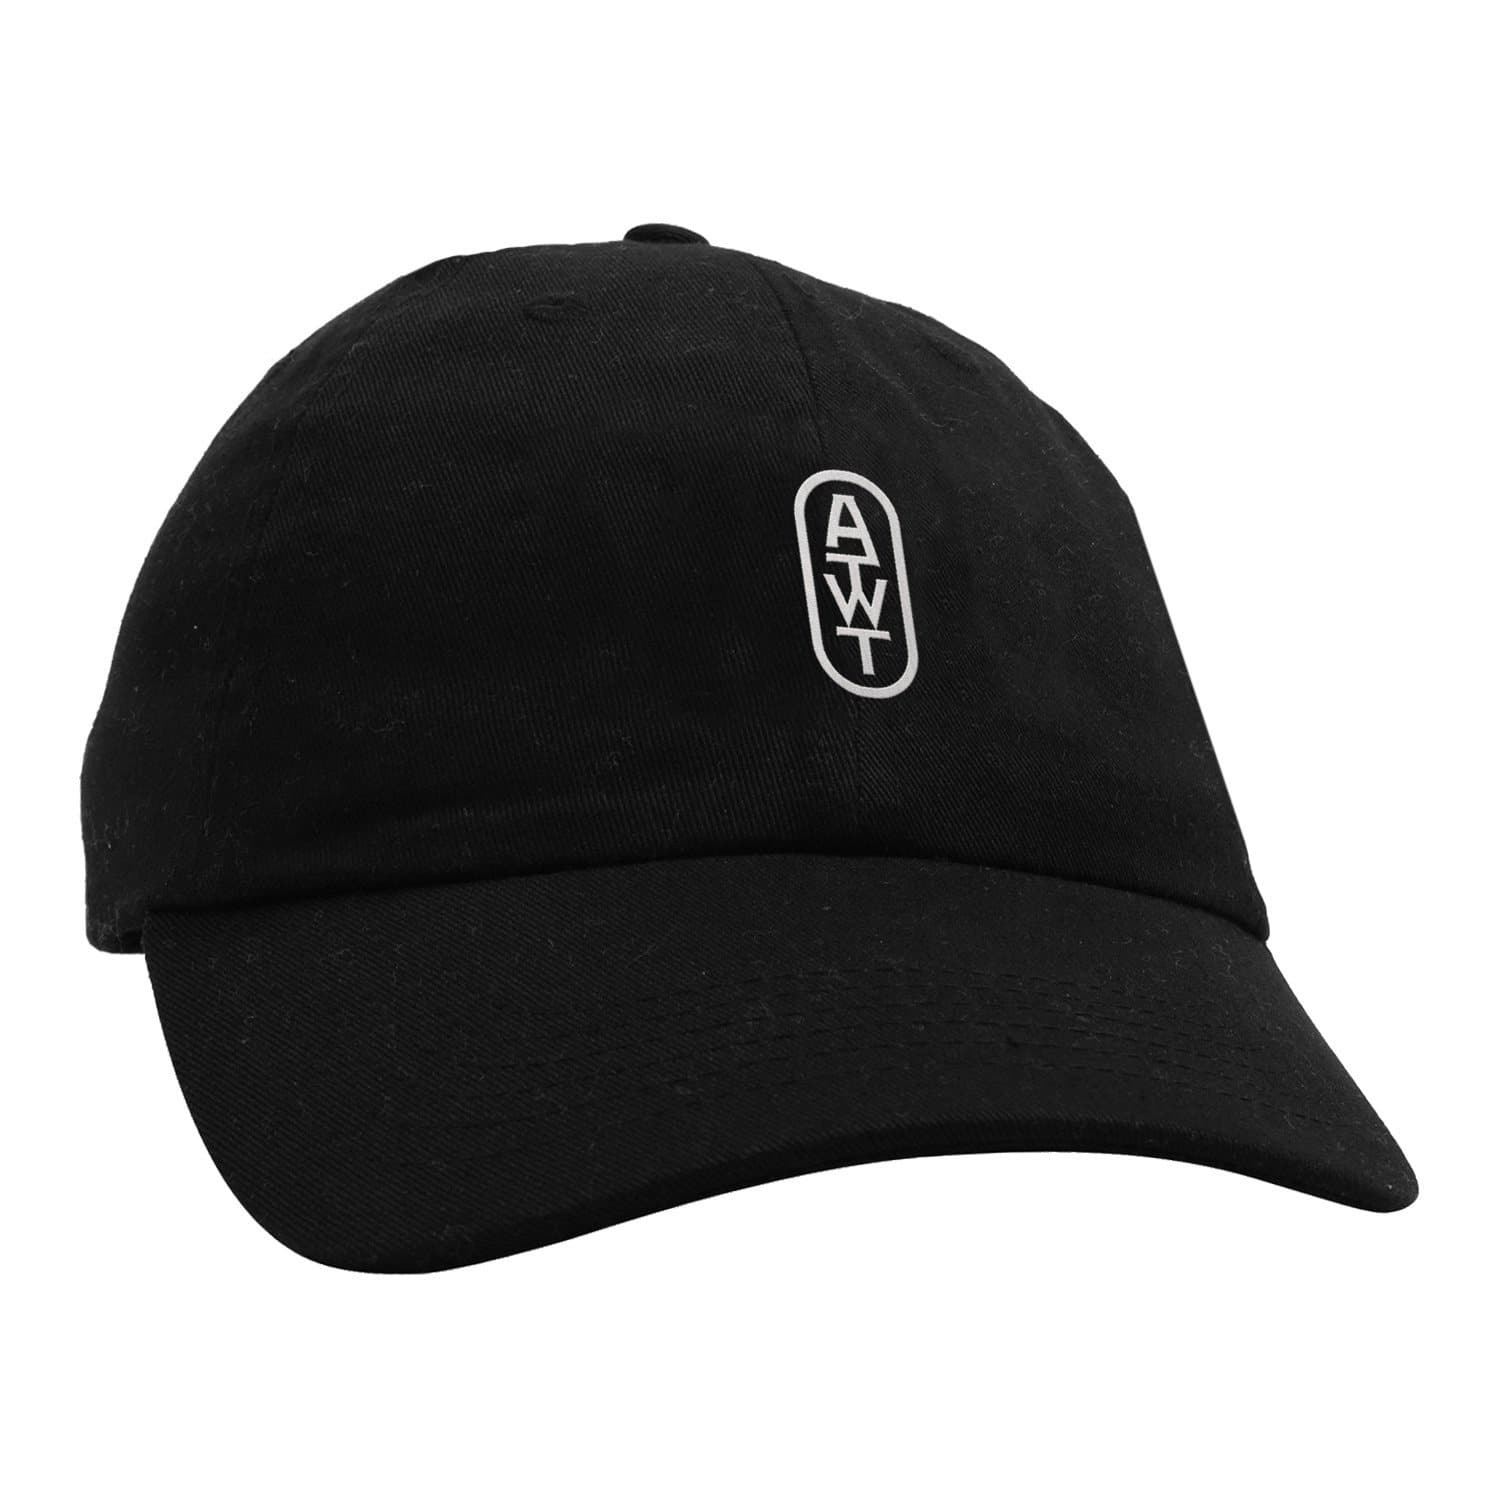 'All Things Work Together' Dad Hat - Black